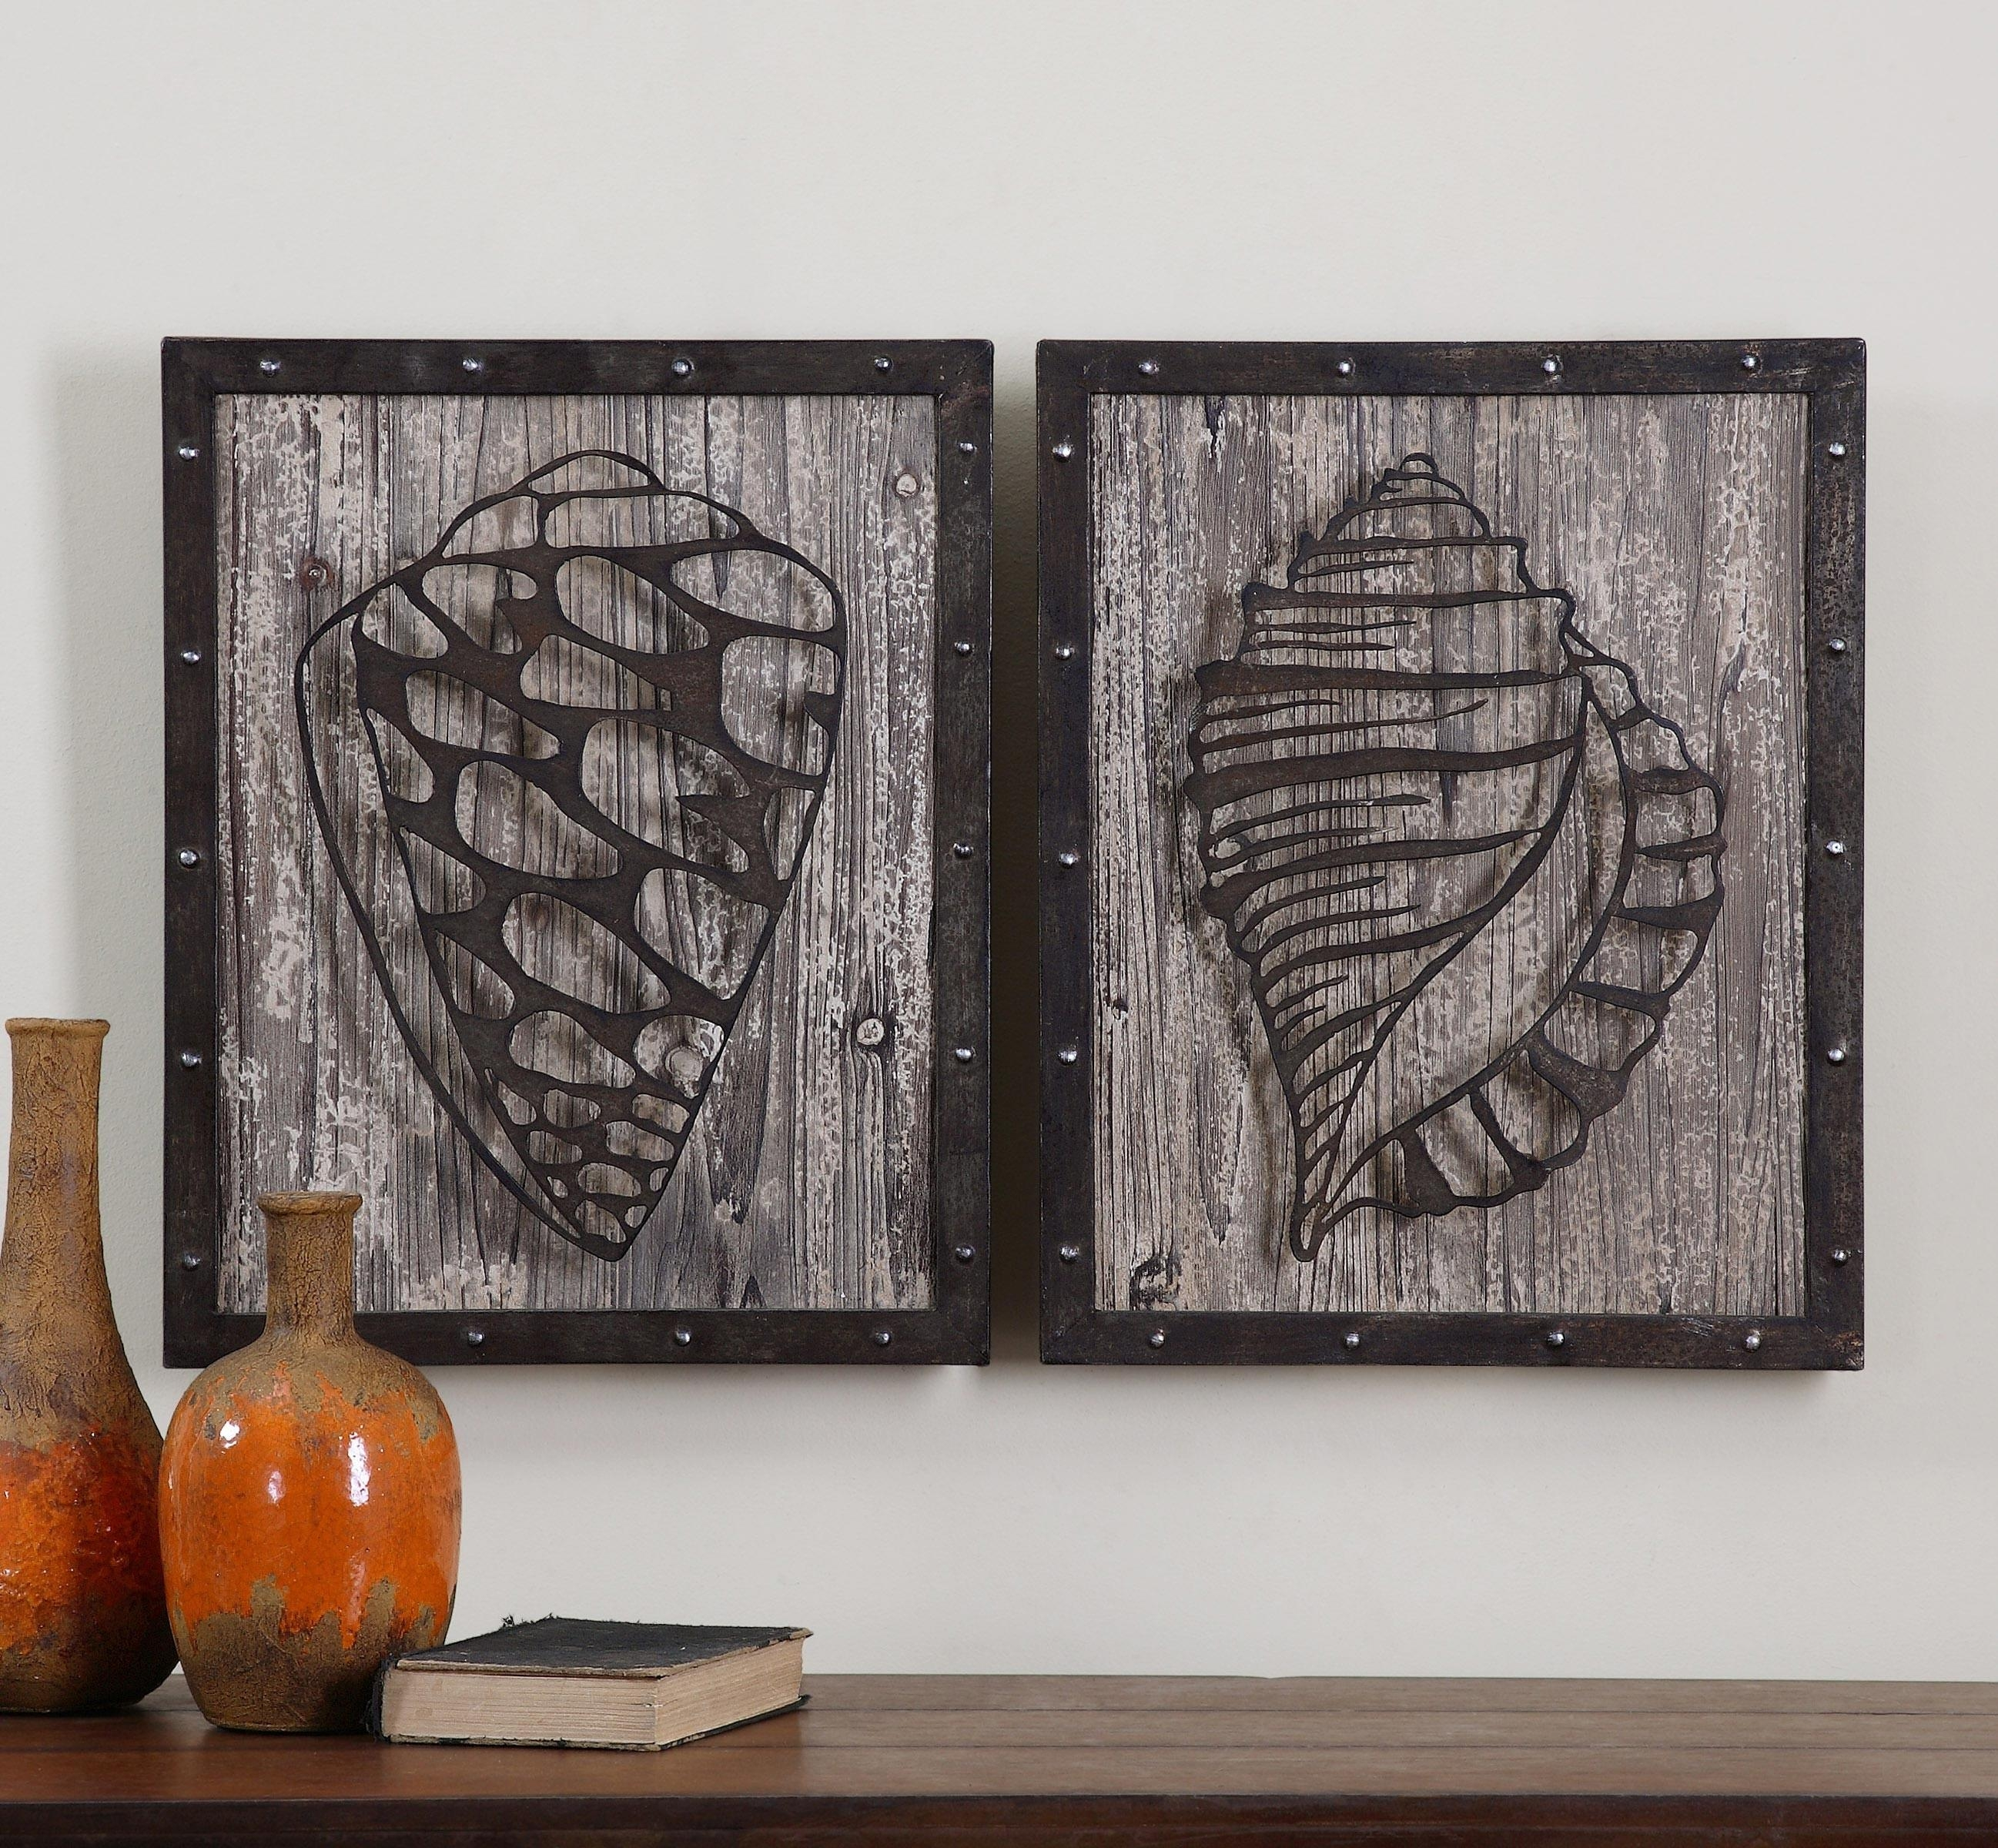 Home Design : Rustic Wood And Metal Wall Art Asian Large Rustic In Wood And Iron Wall Art (View 14 of 20)